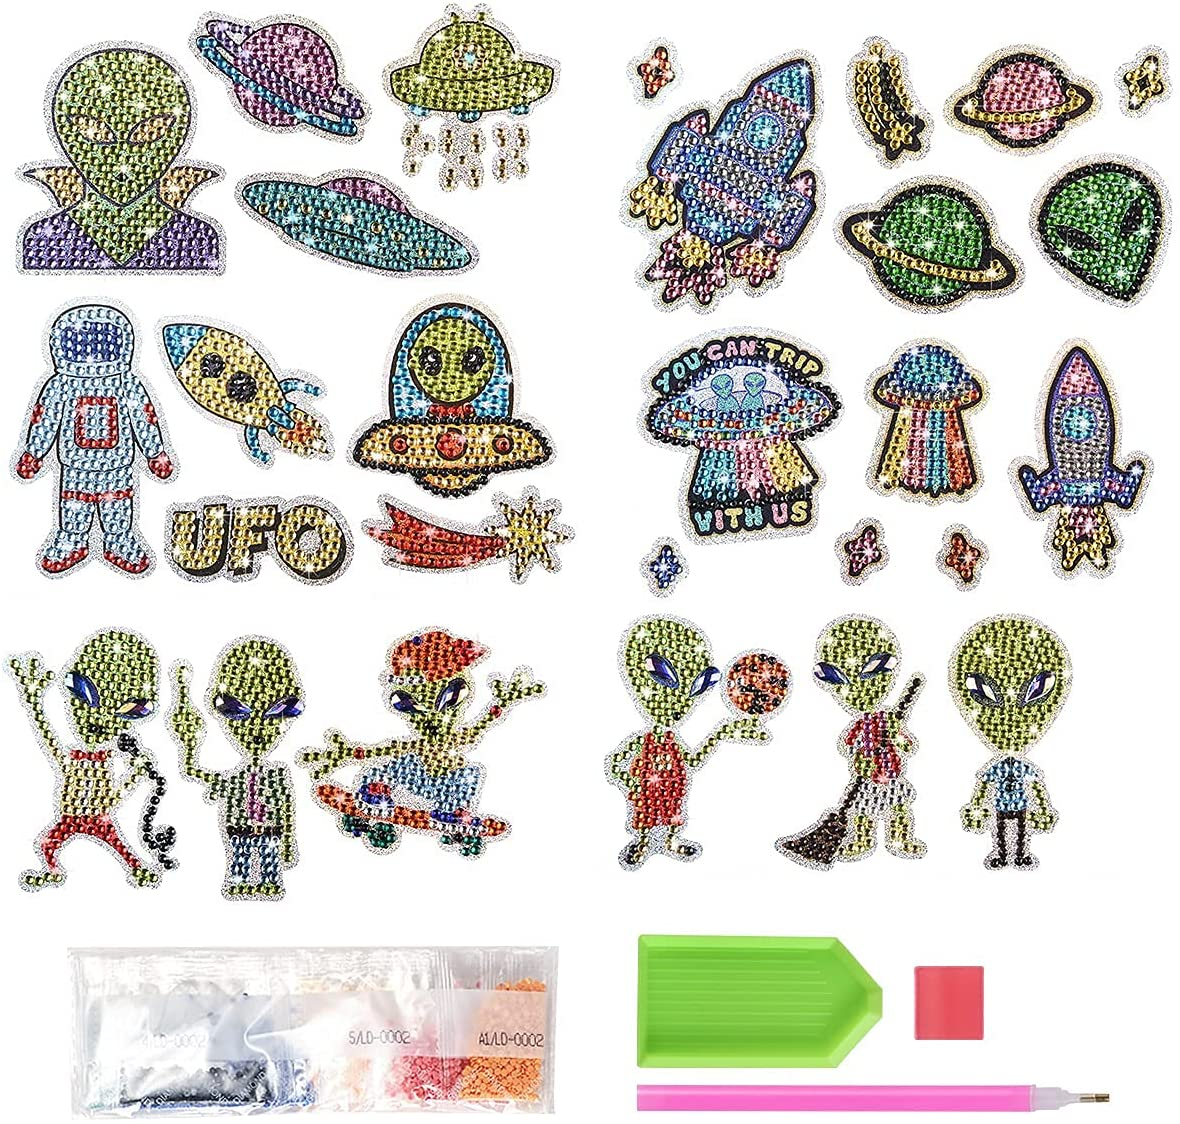 5D Diamond We OFFer at cheap prices Oakland Mall Painting Stickers kit Art Kids for Crafts DIY